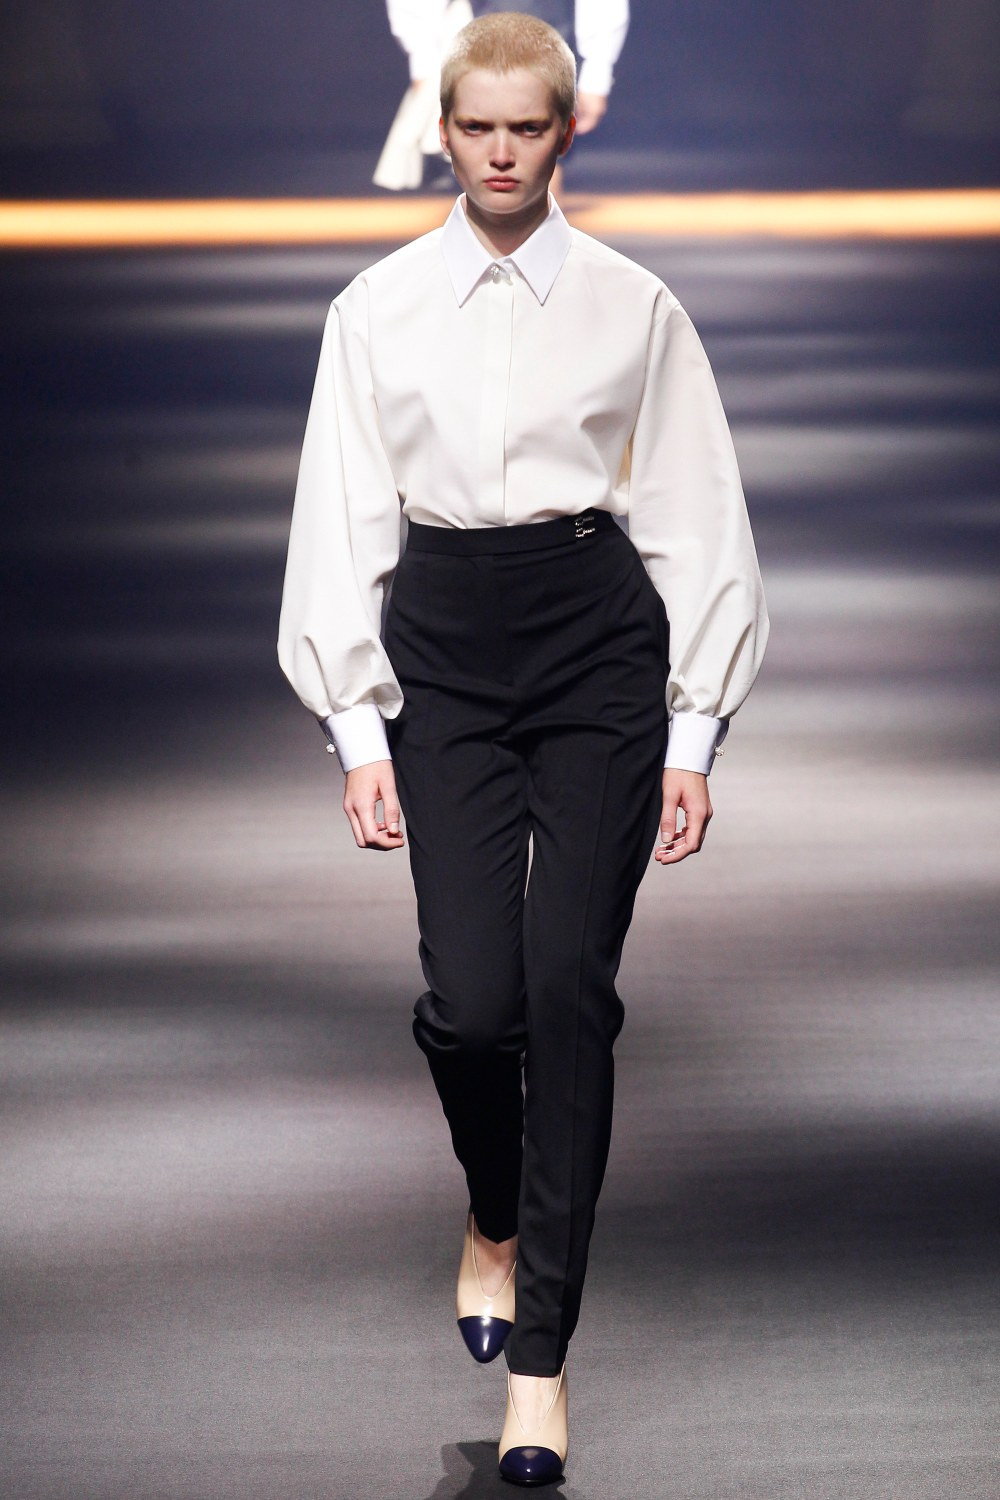 Look 1 Ruth Bell